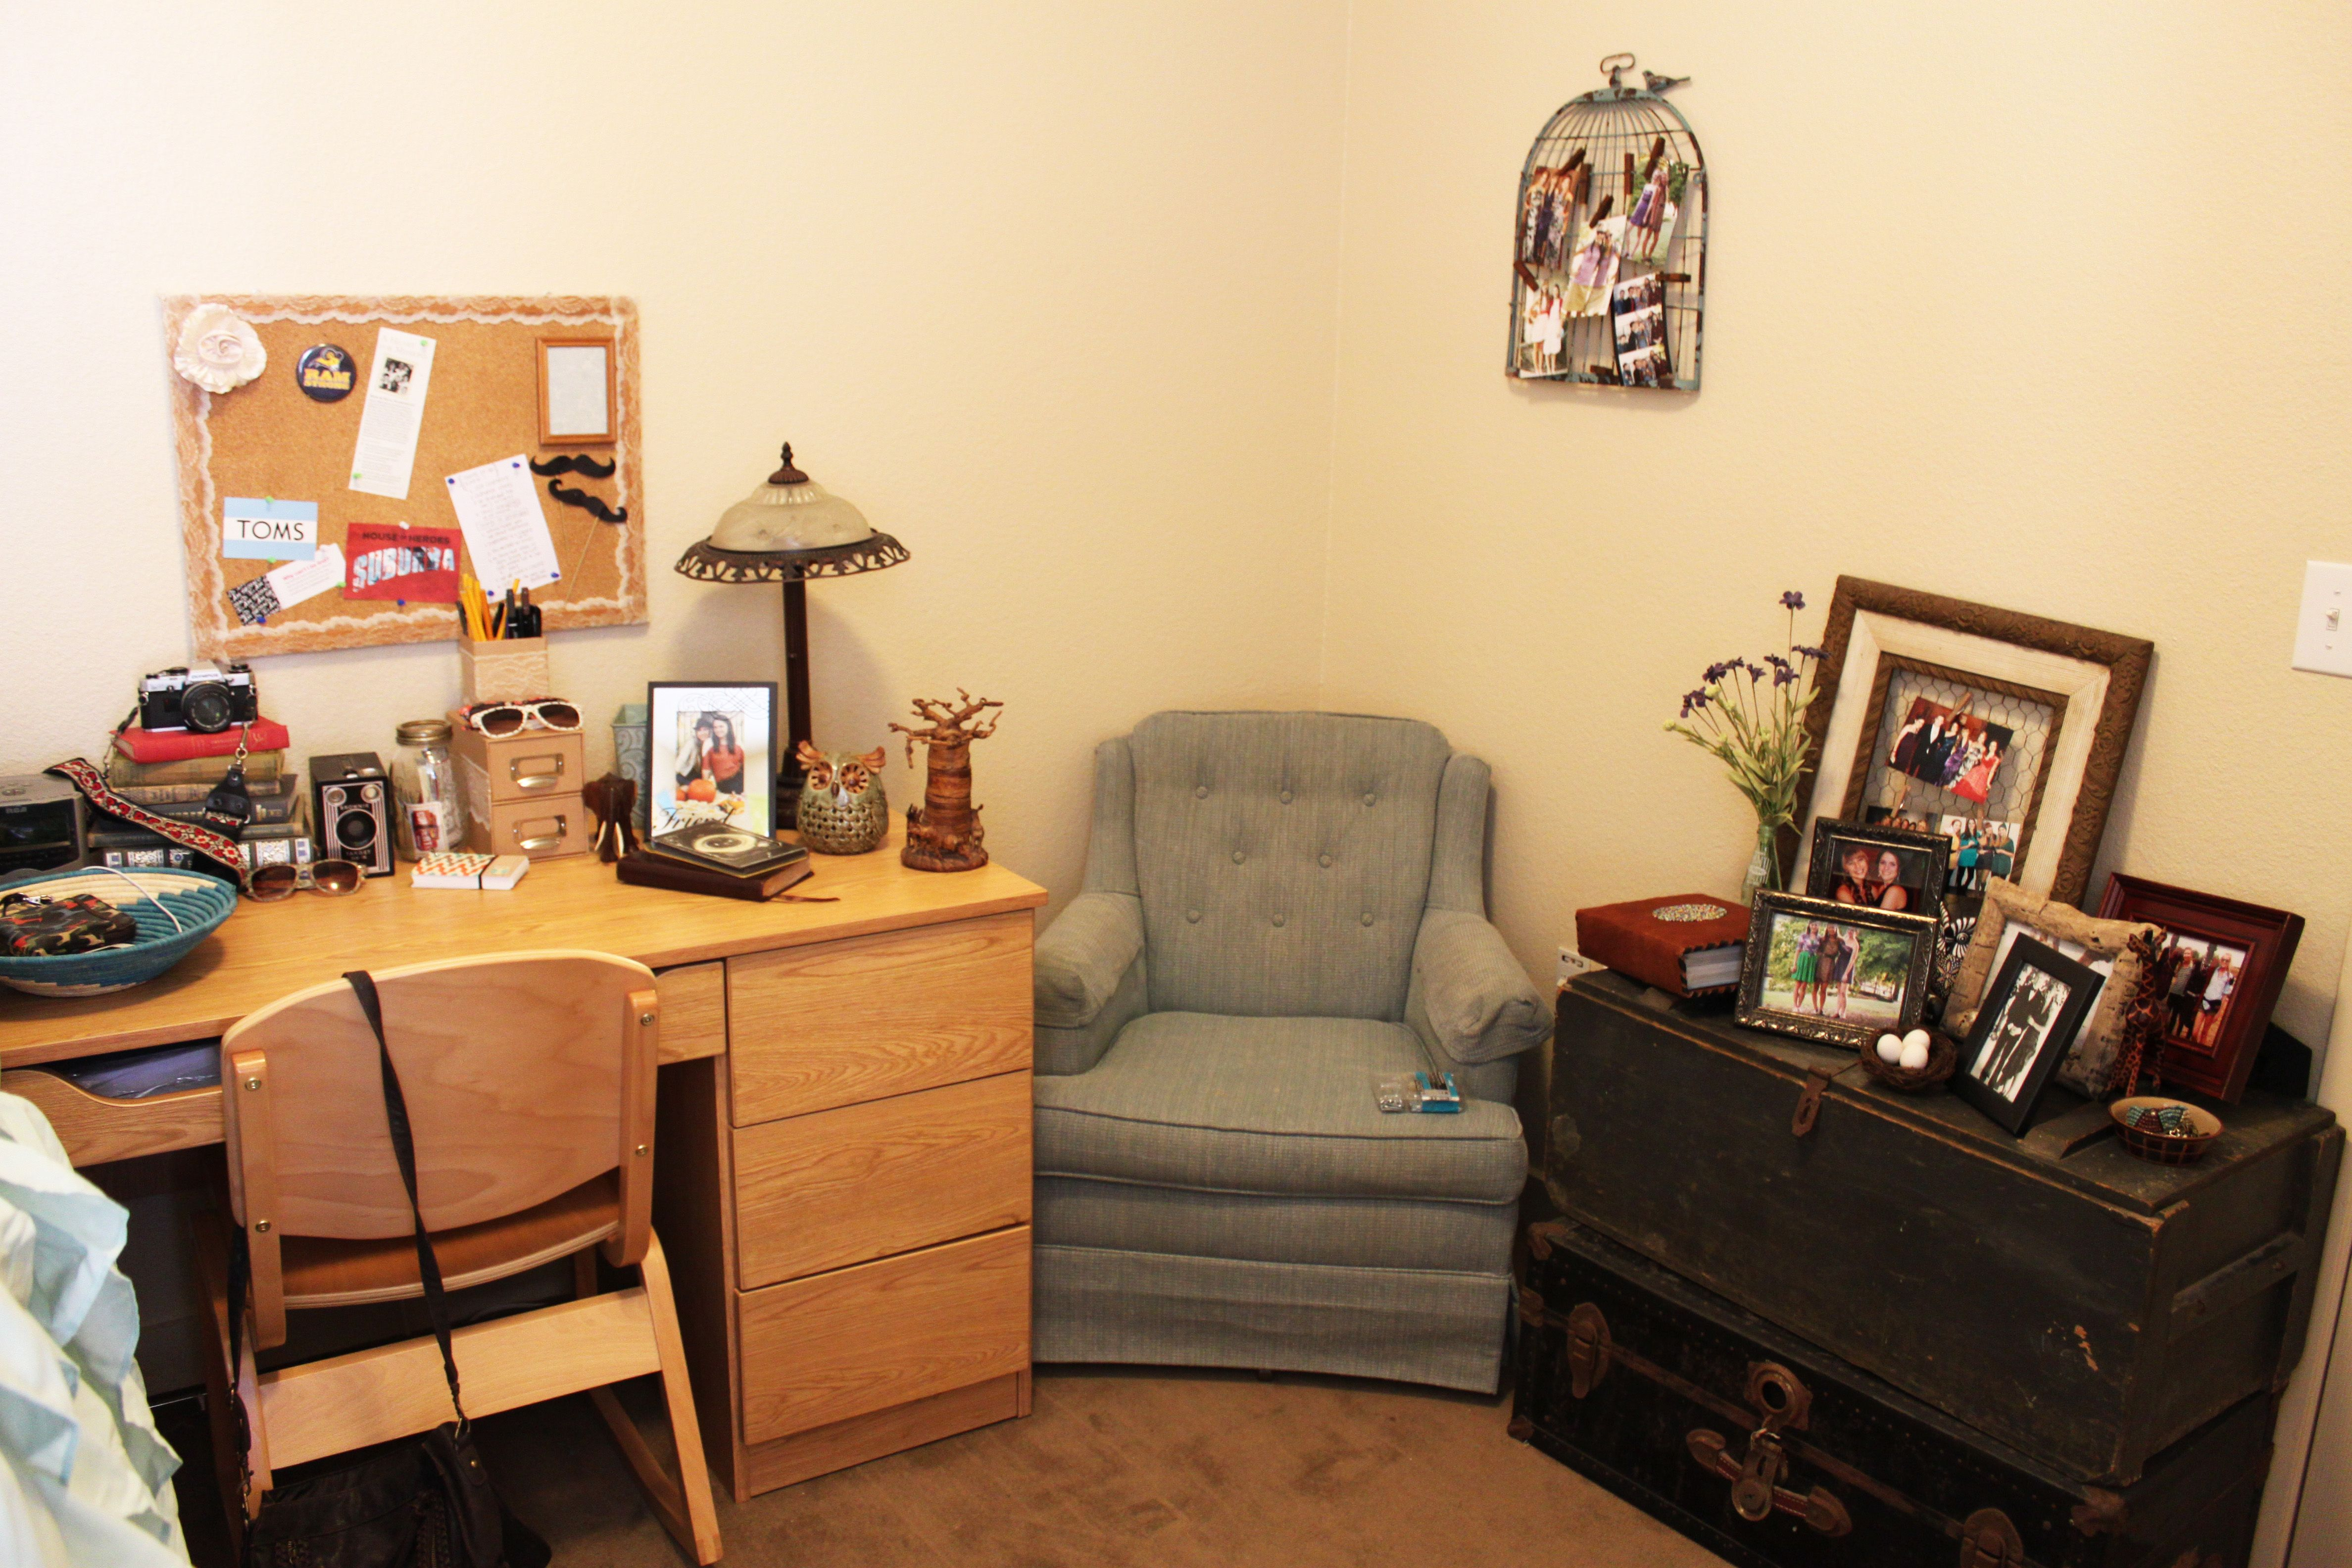 College dorm room #trunks | College Life and Beyond | Pinterest